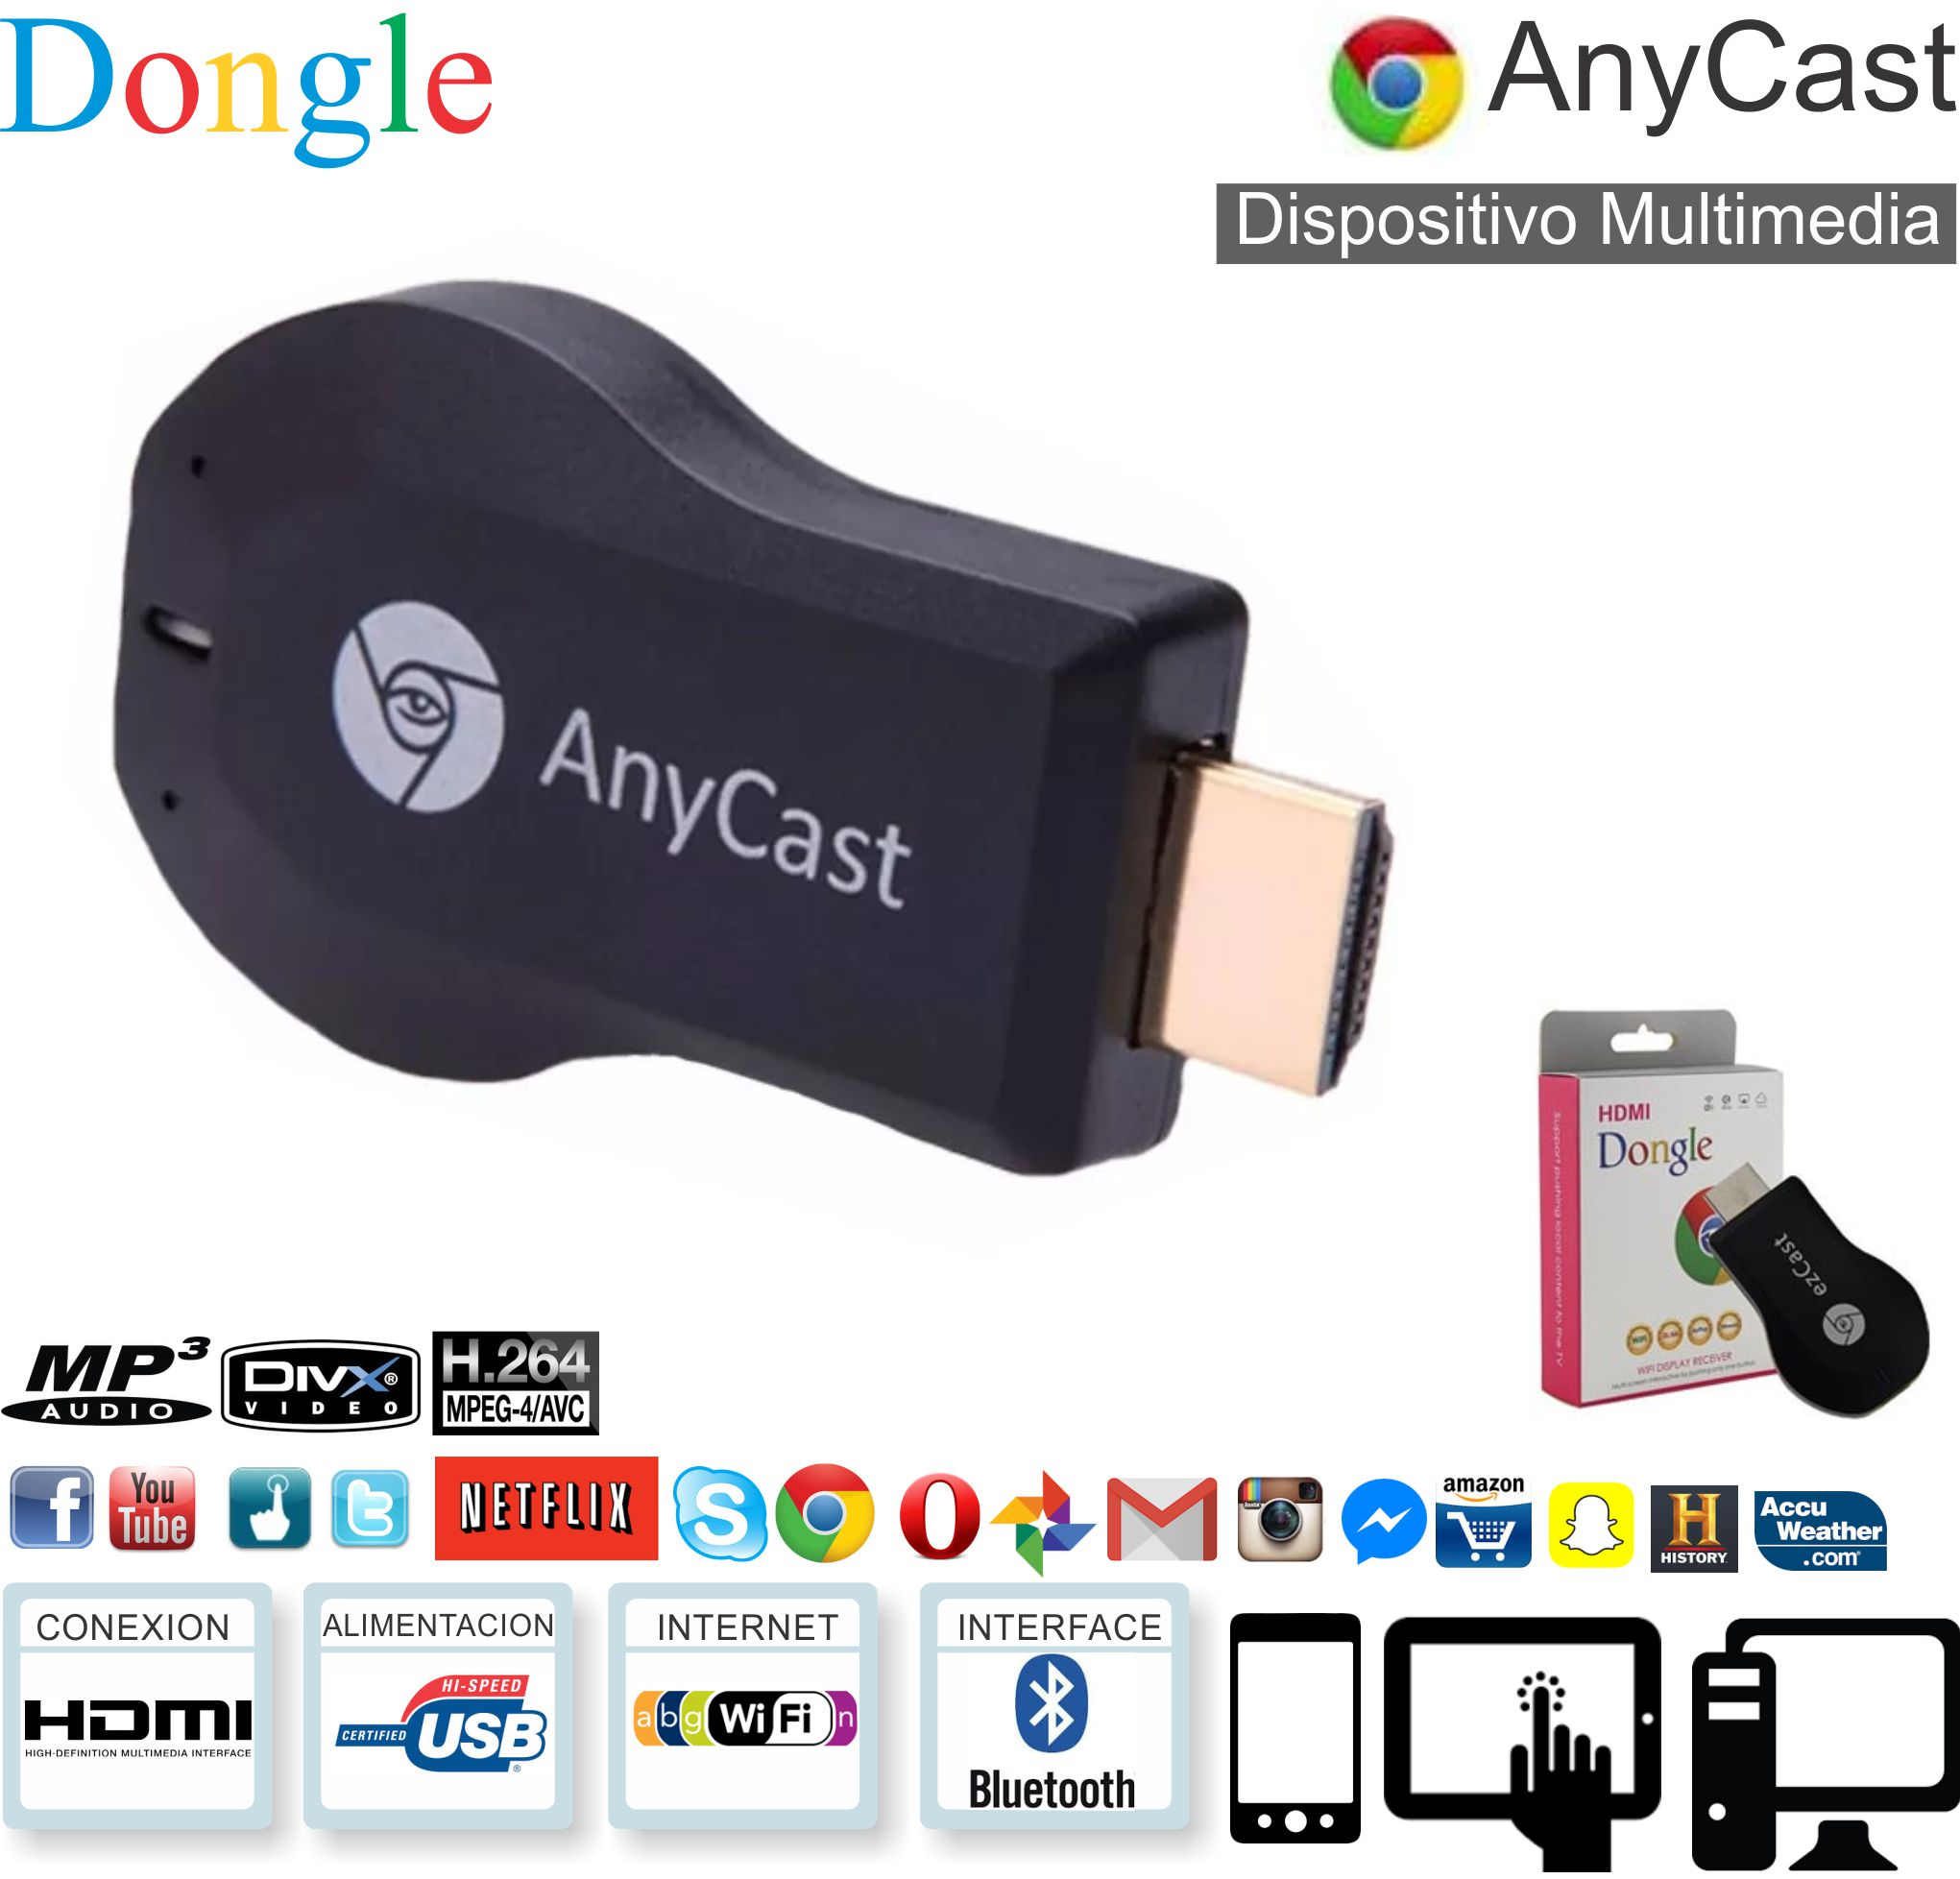 Dongle AnyCast